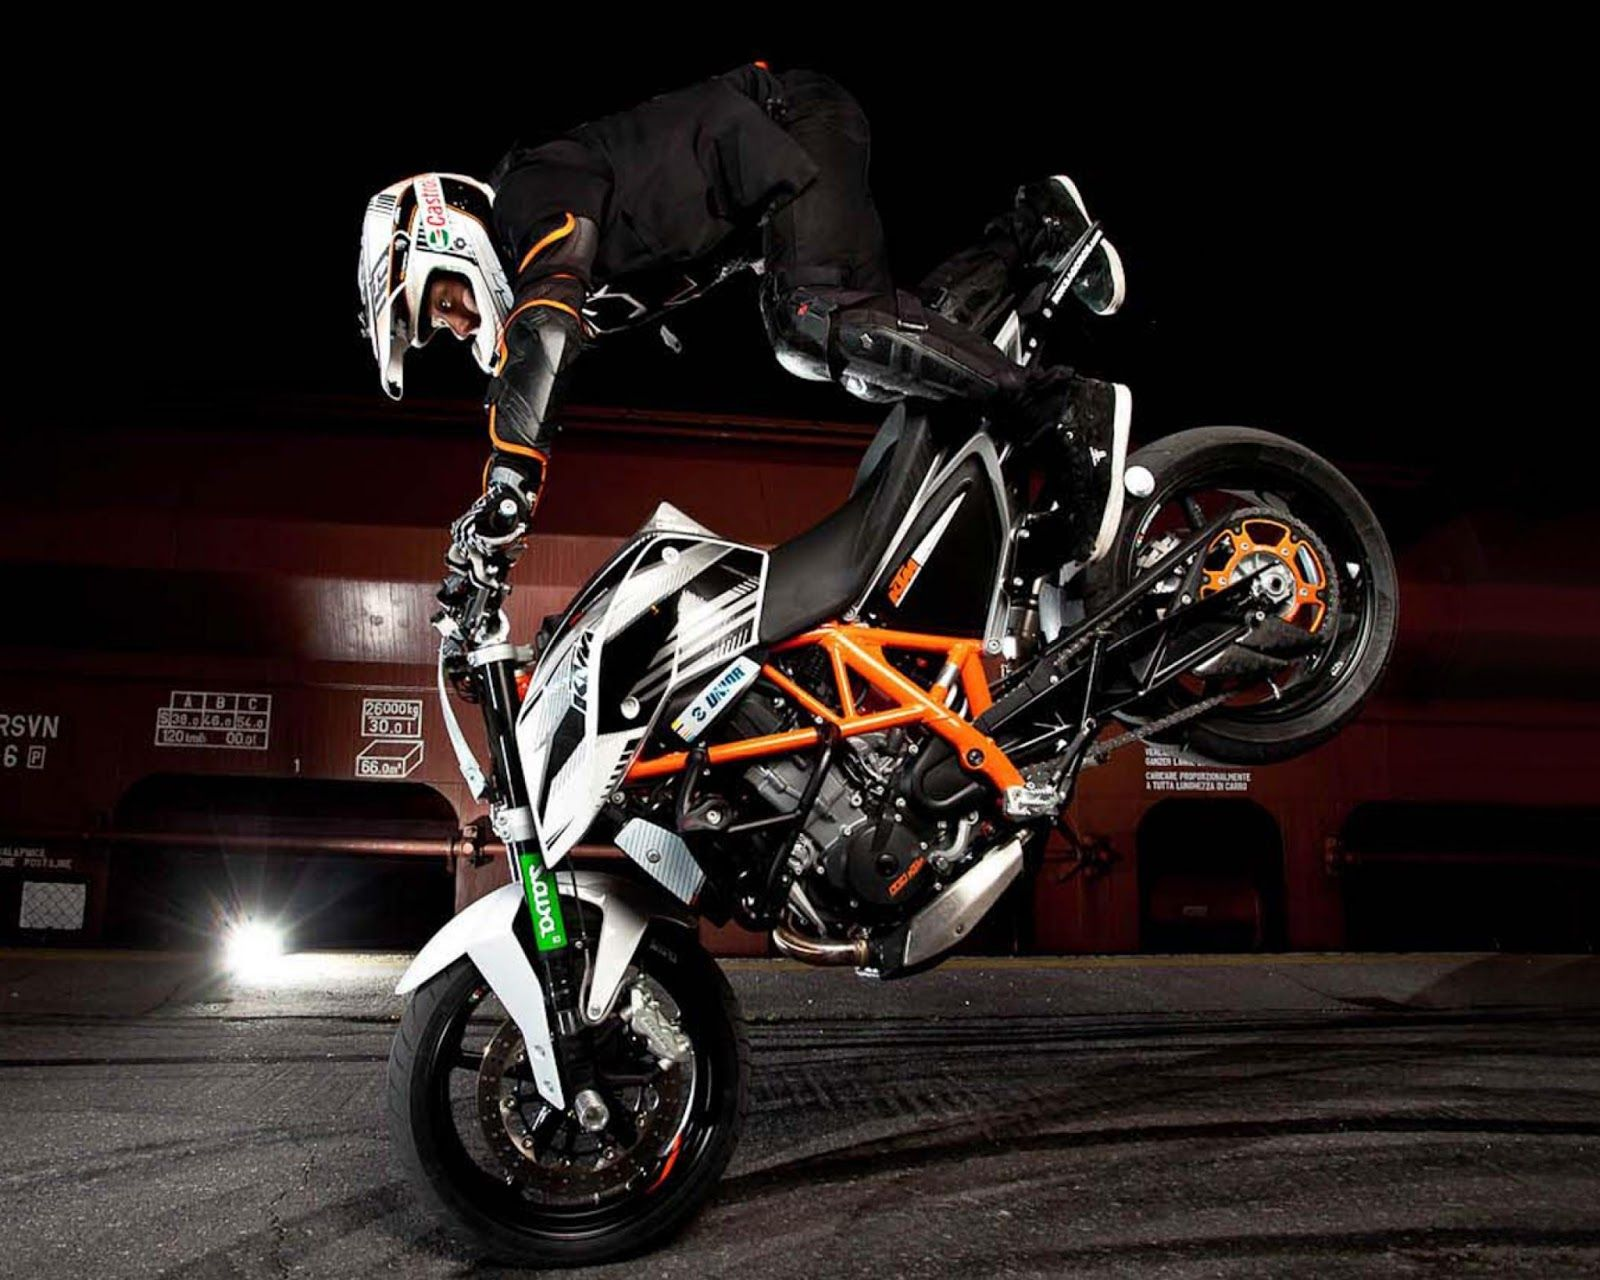 Wallpaper Of Bikes Stunt